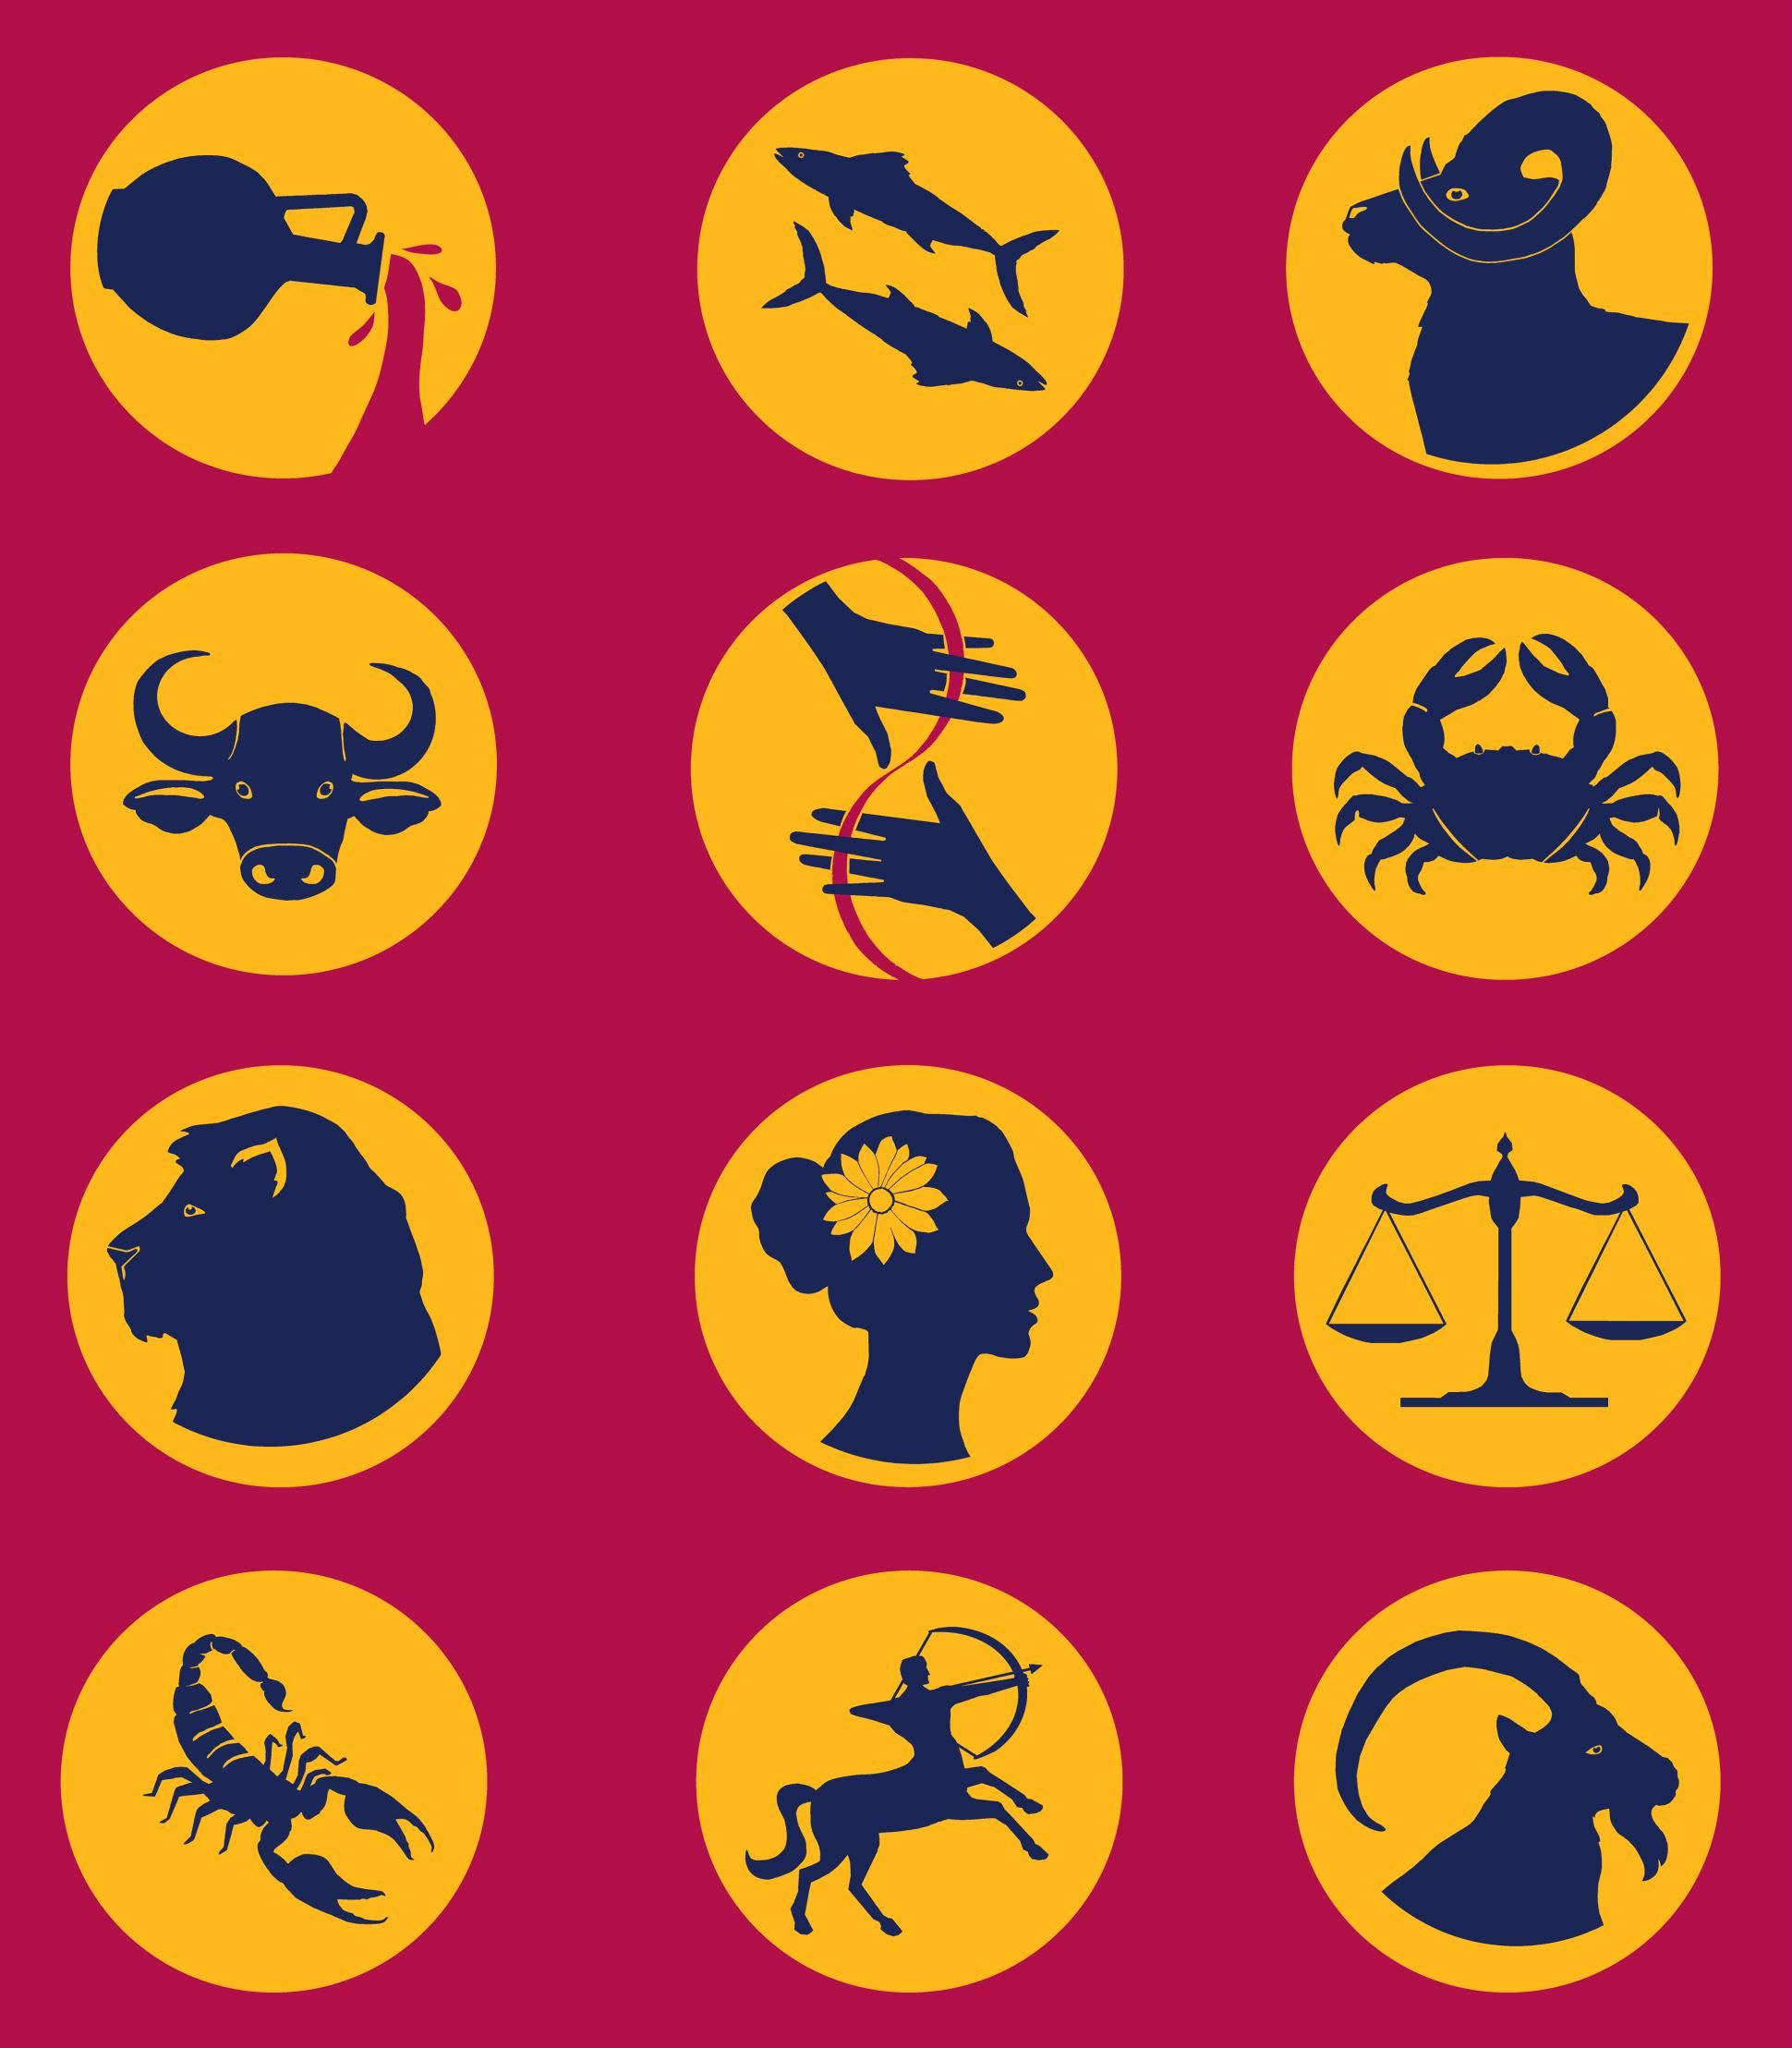 Traits You May Not Know About Zodiac Signs